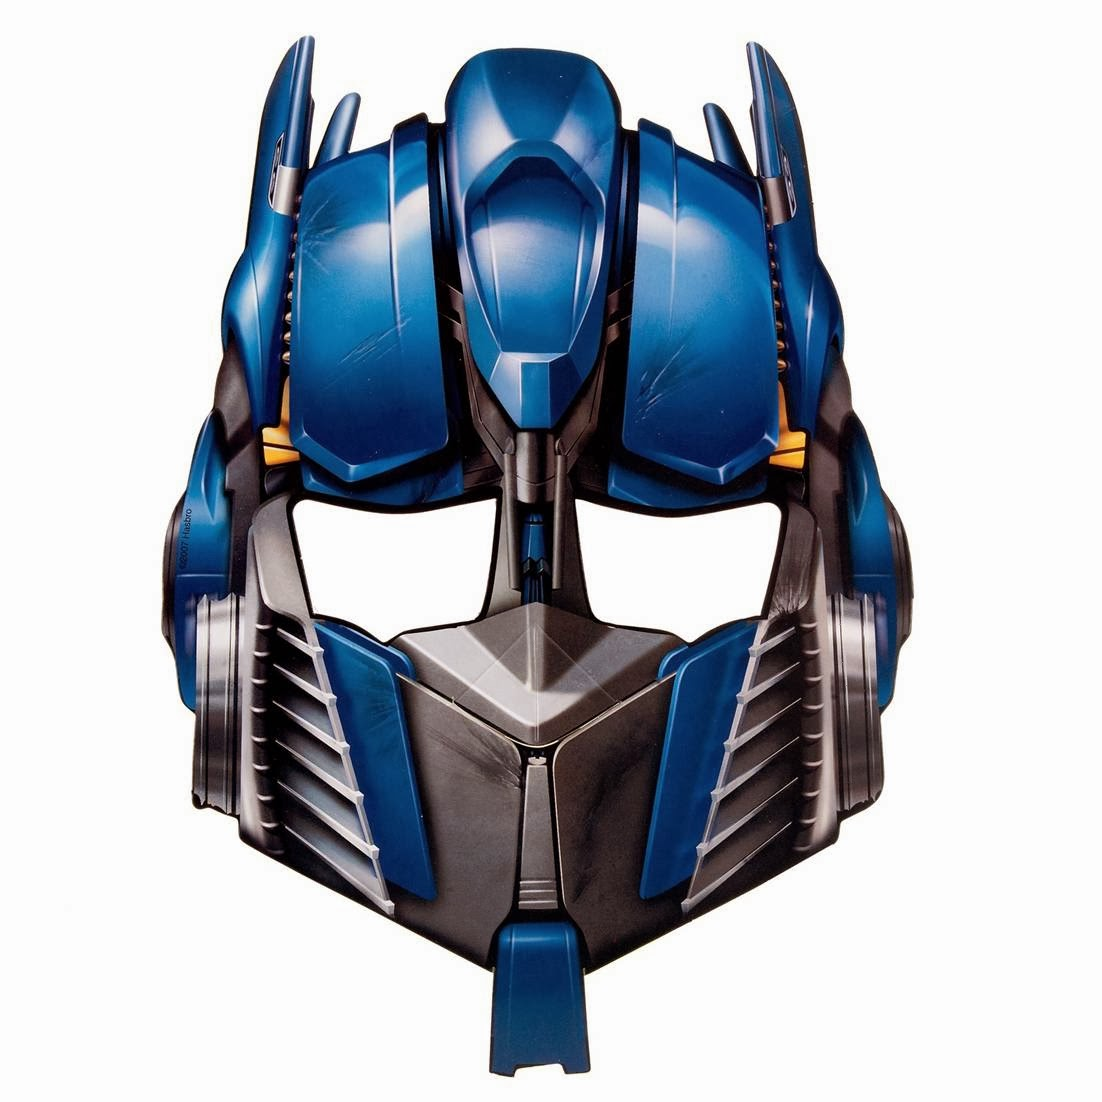 Transformers Free Printable Masks  - Oh My Fiesta! in english